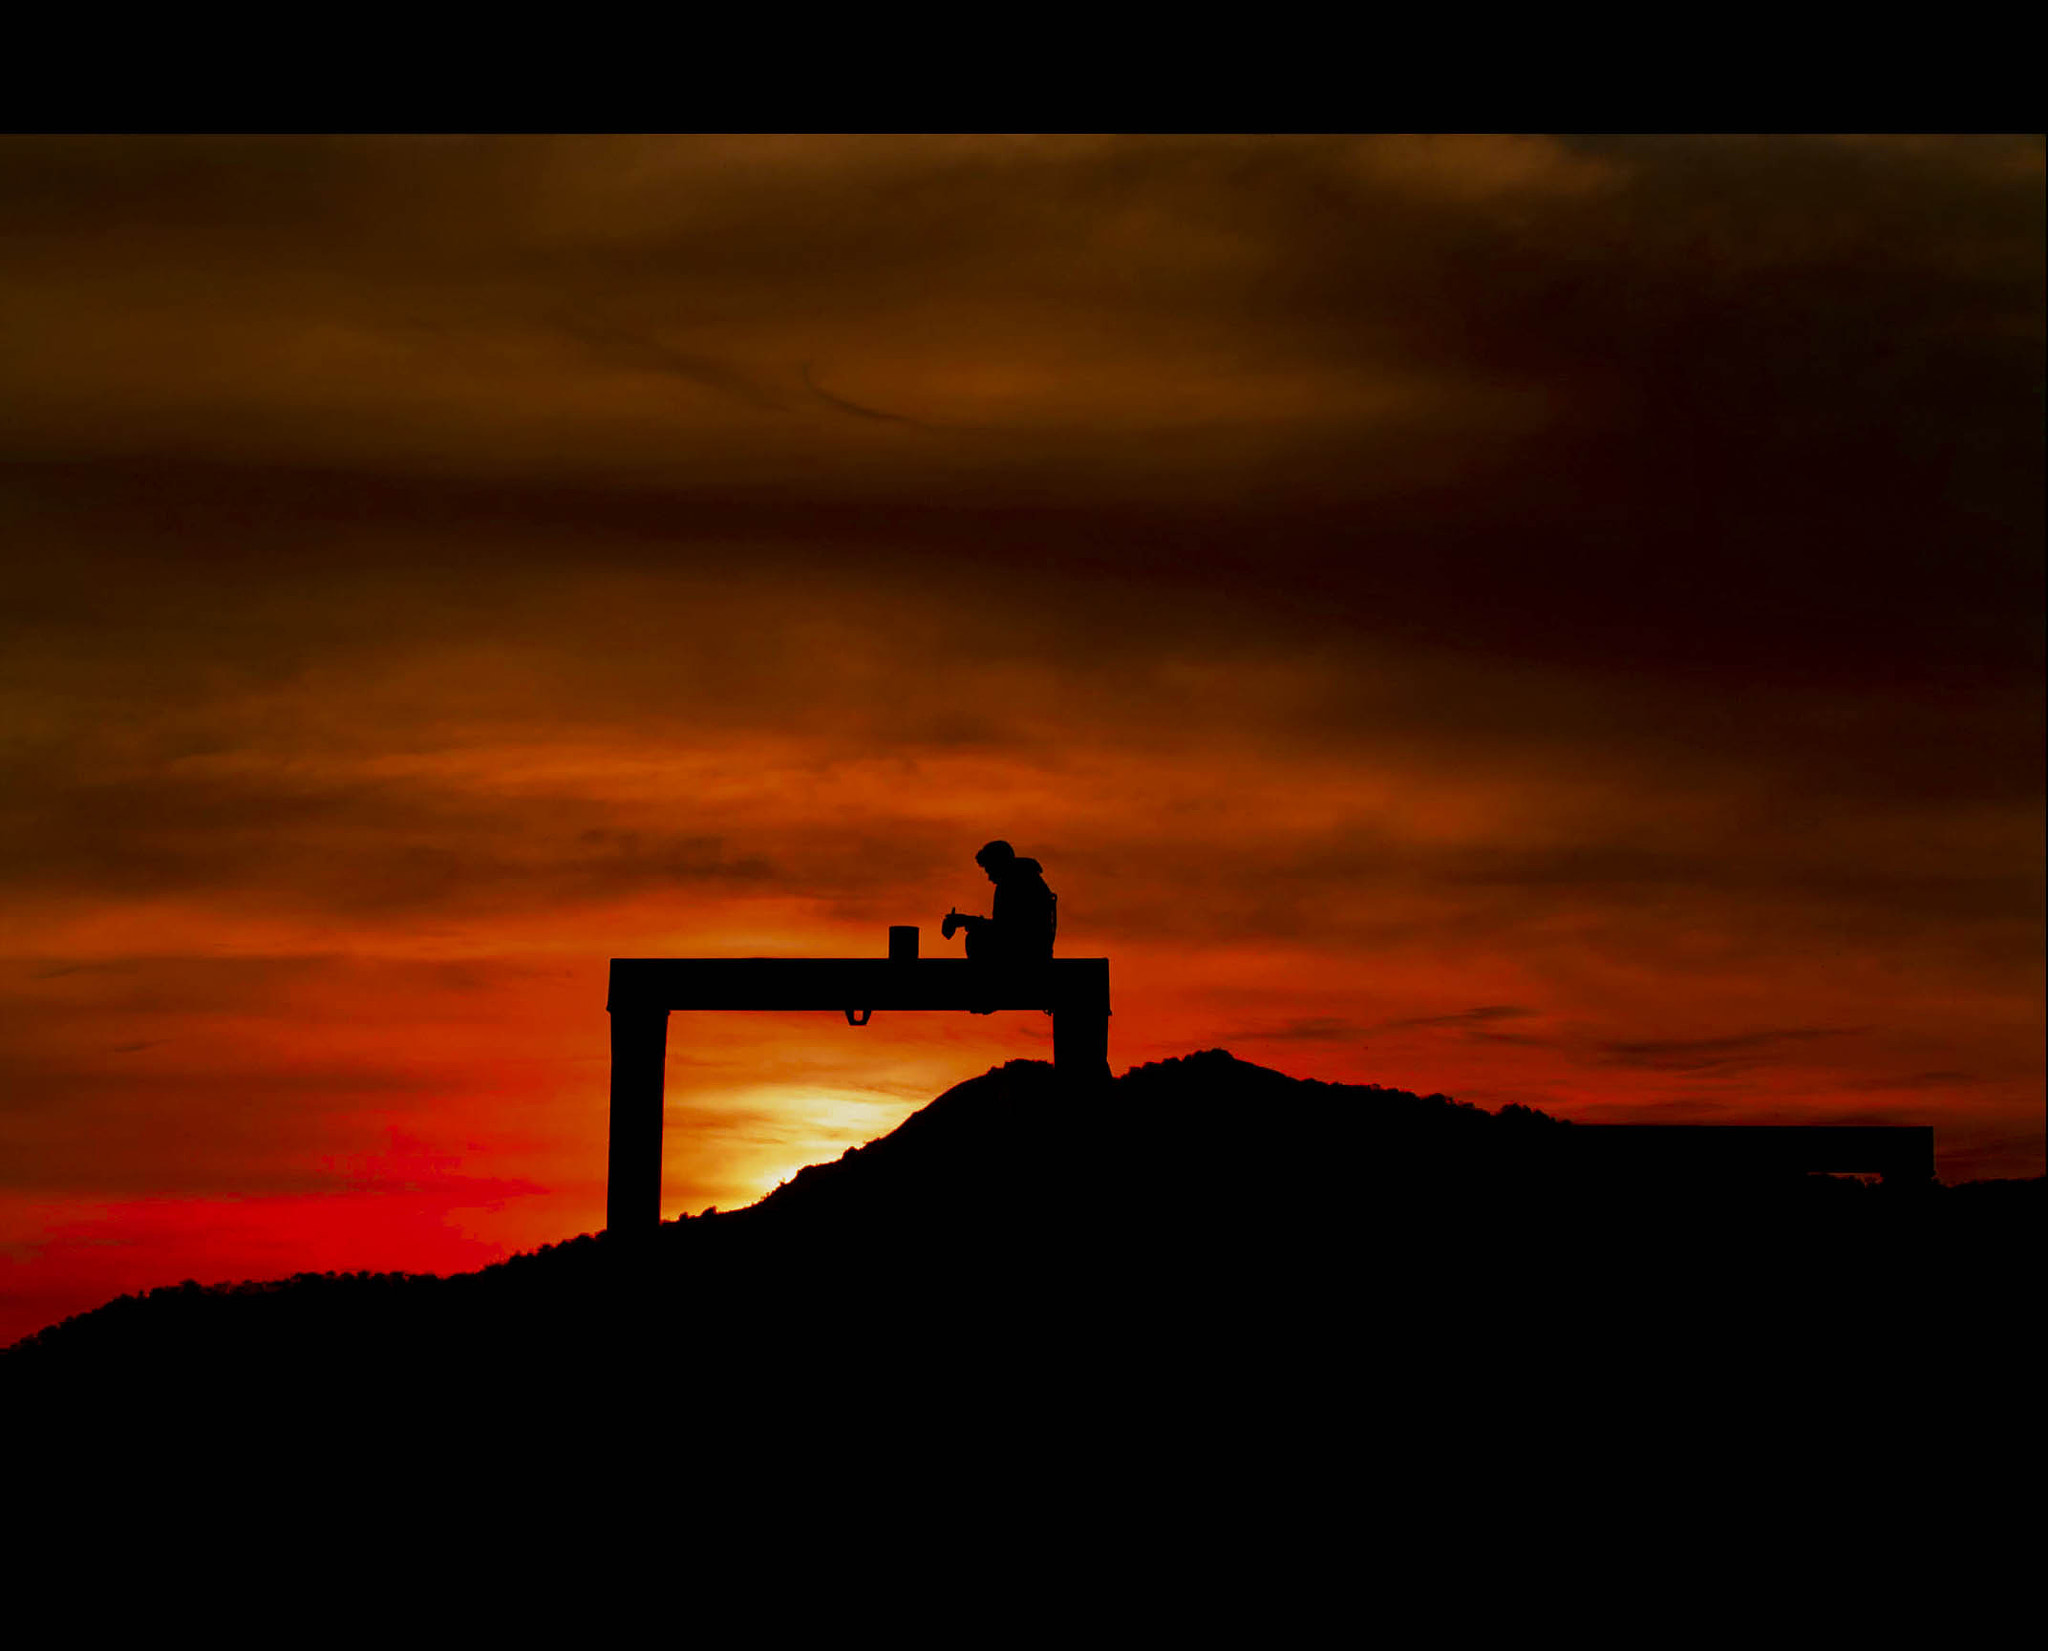 Photograph Sunset Painter by Arjun Ajith on 500px